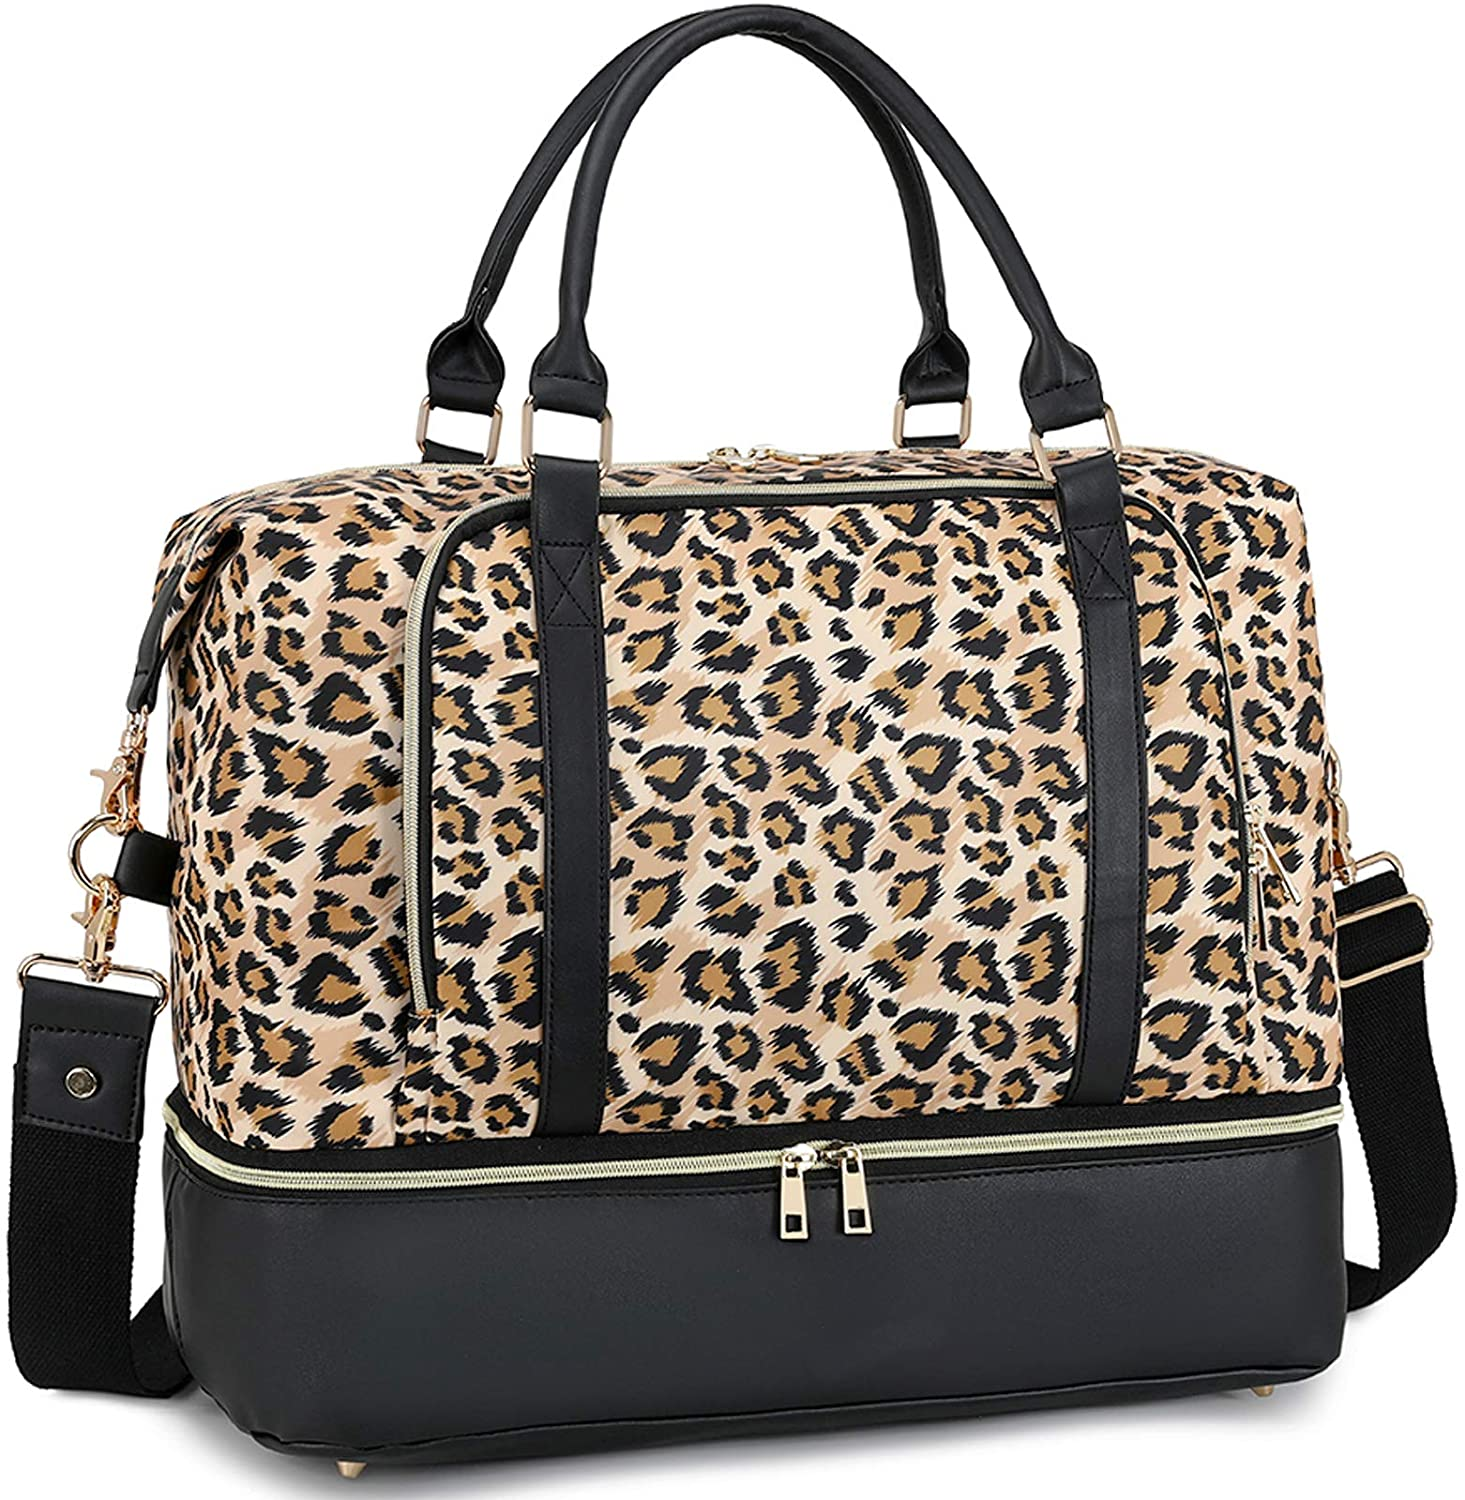 CAMTOP Weekender Travel Bags for Overnight P Women Cheap super special price Duffle Limited time trial price Ladies